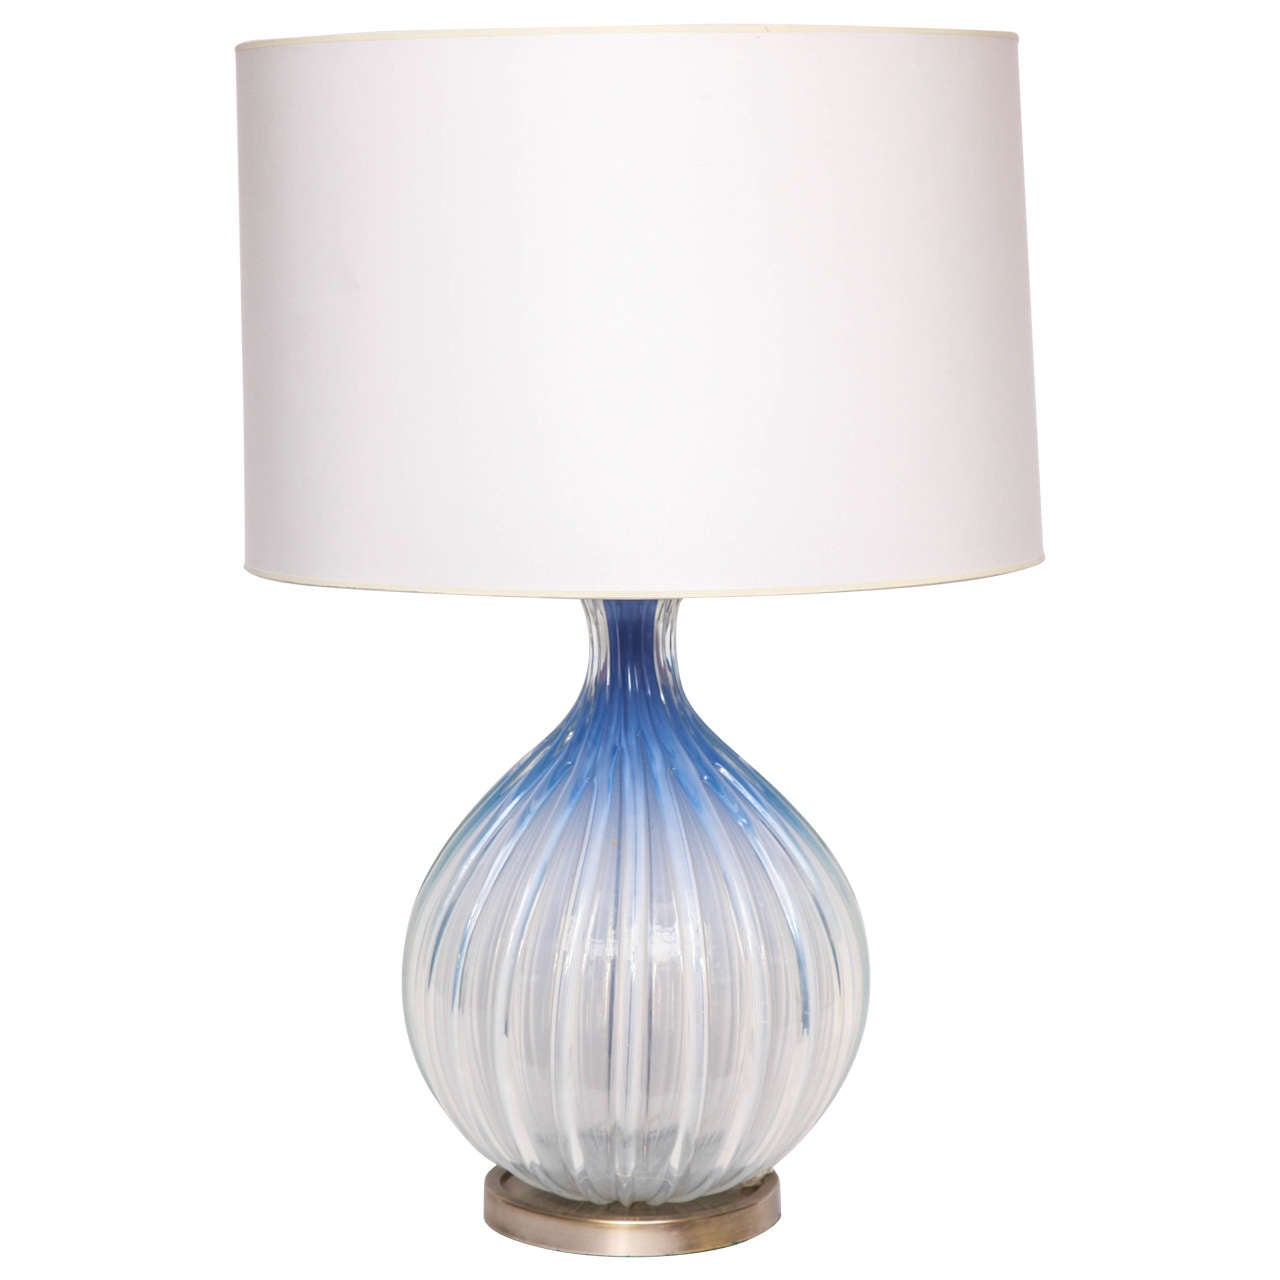 1950s, Italian Art Glass Table Lamp by Seguso For Sale